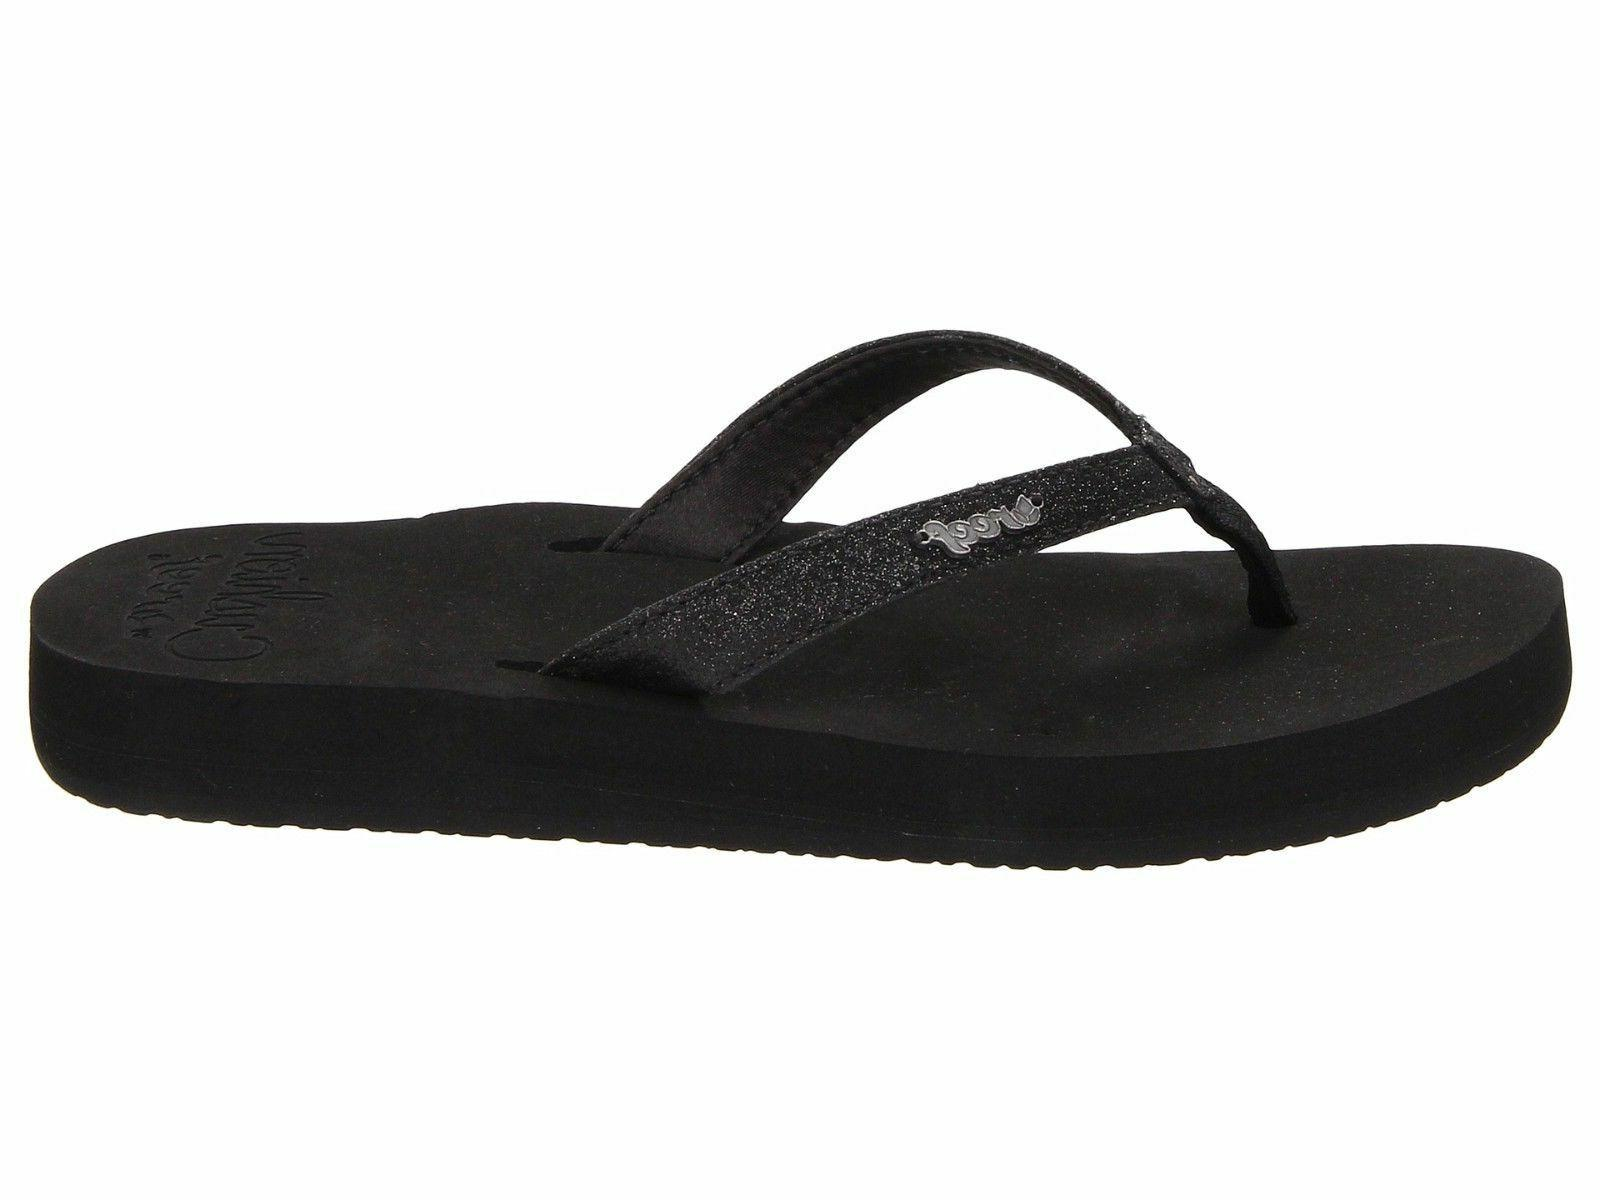 Reef Star Cushion Black Women's Casual Flip Flop Sandals RF0